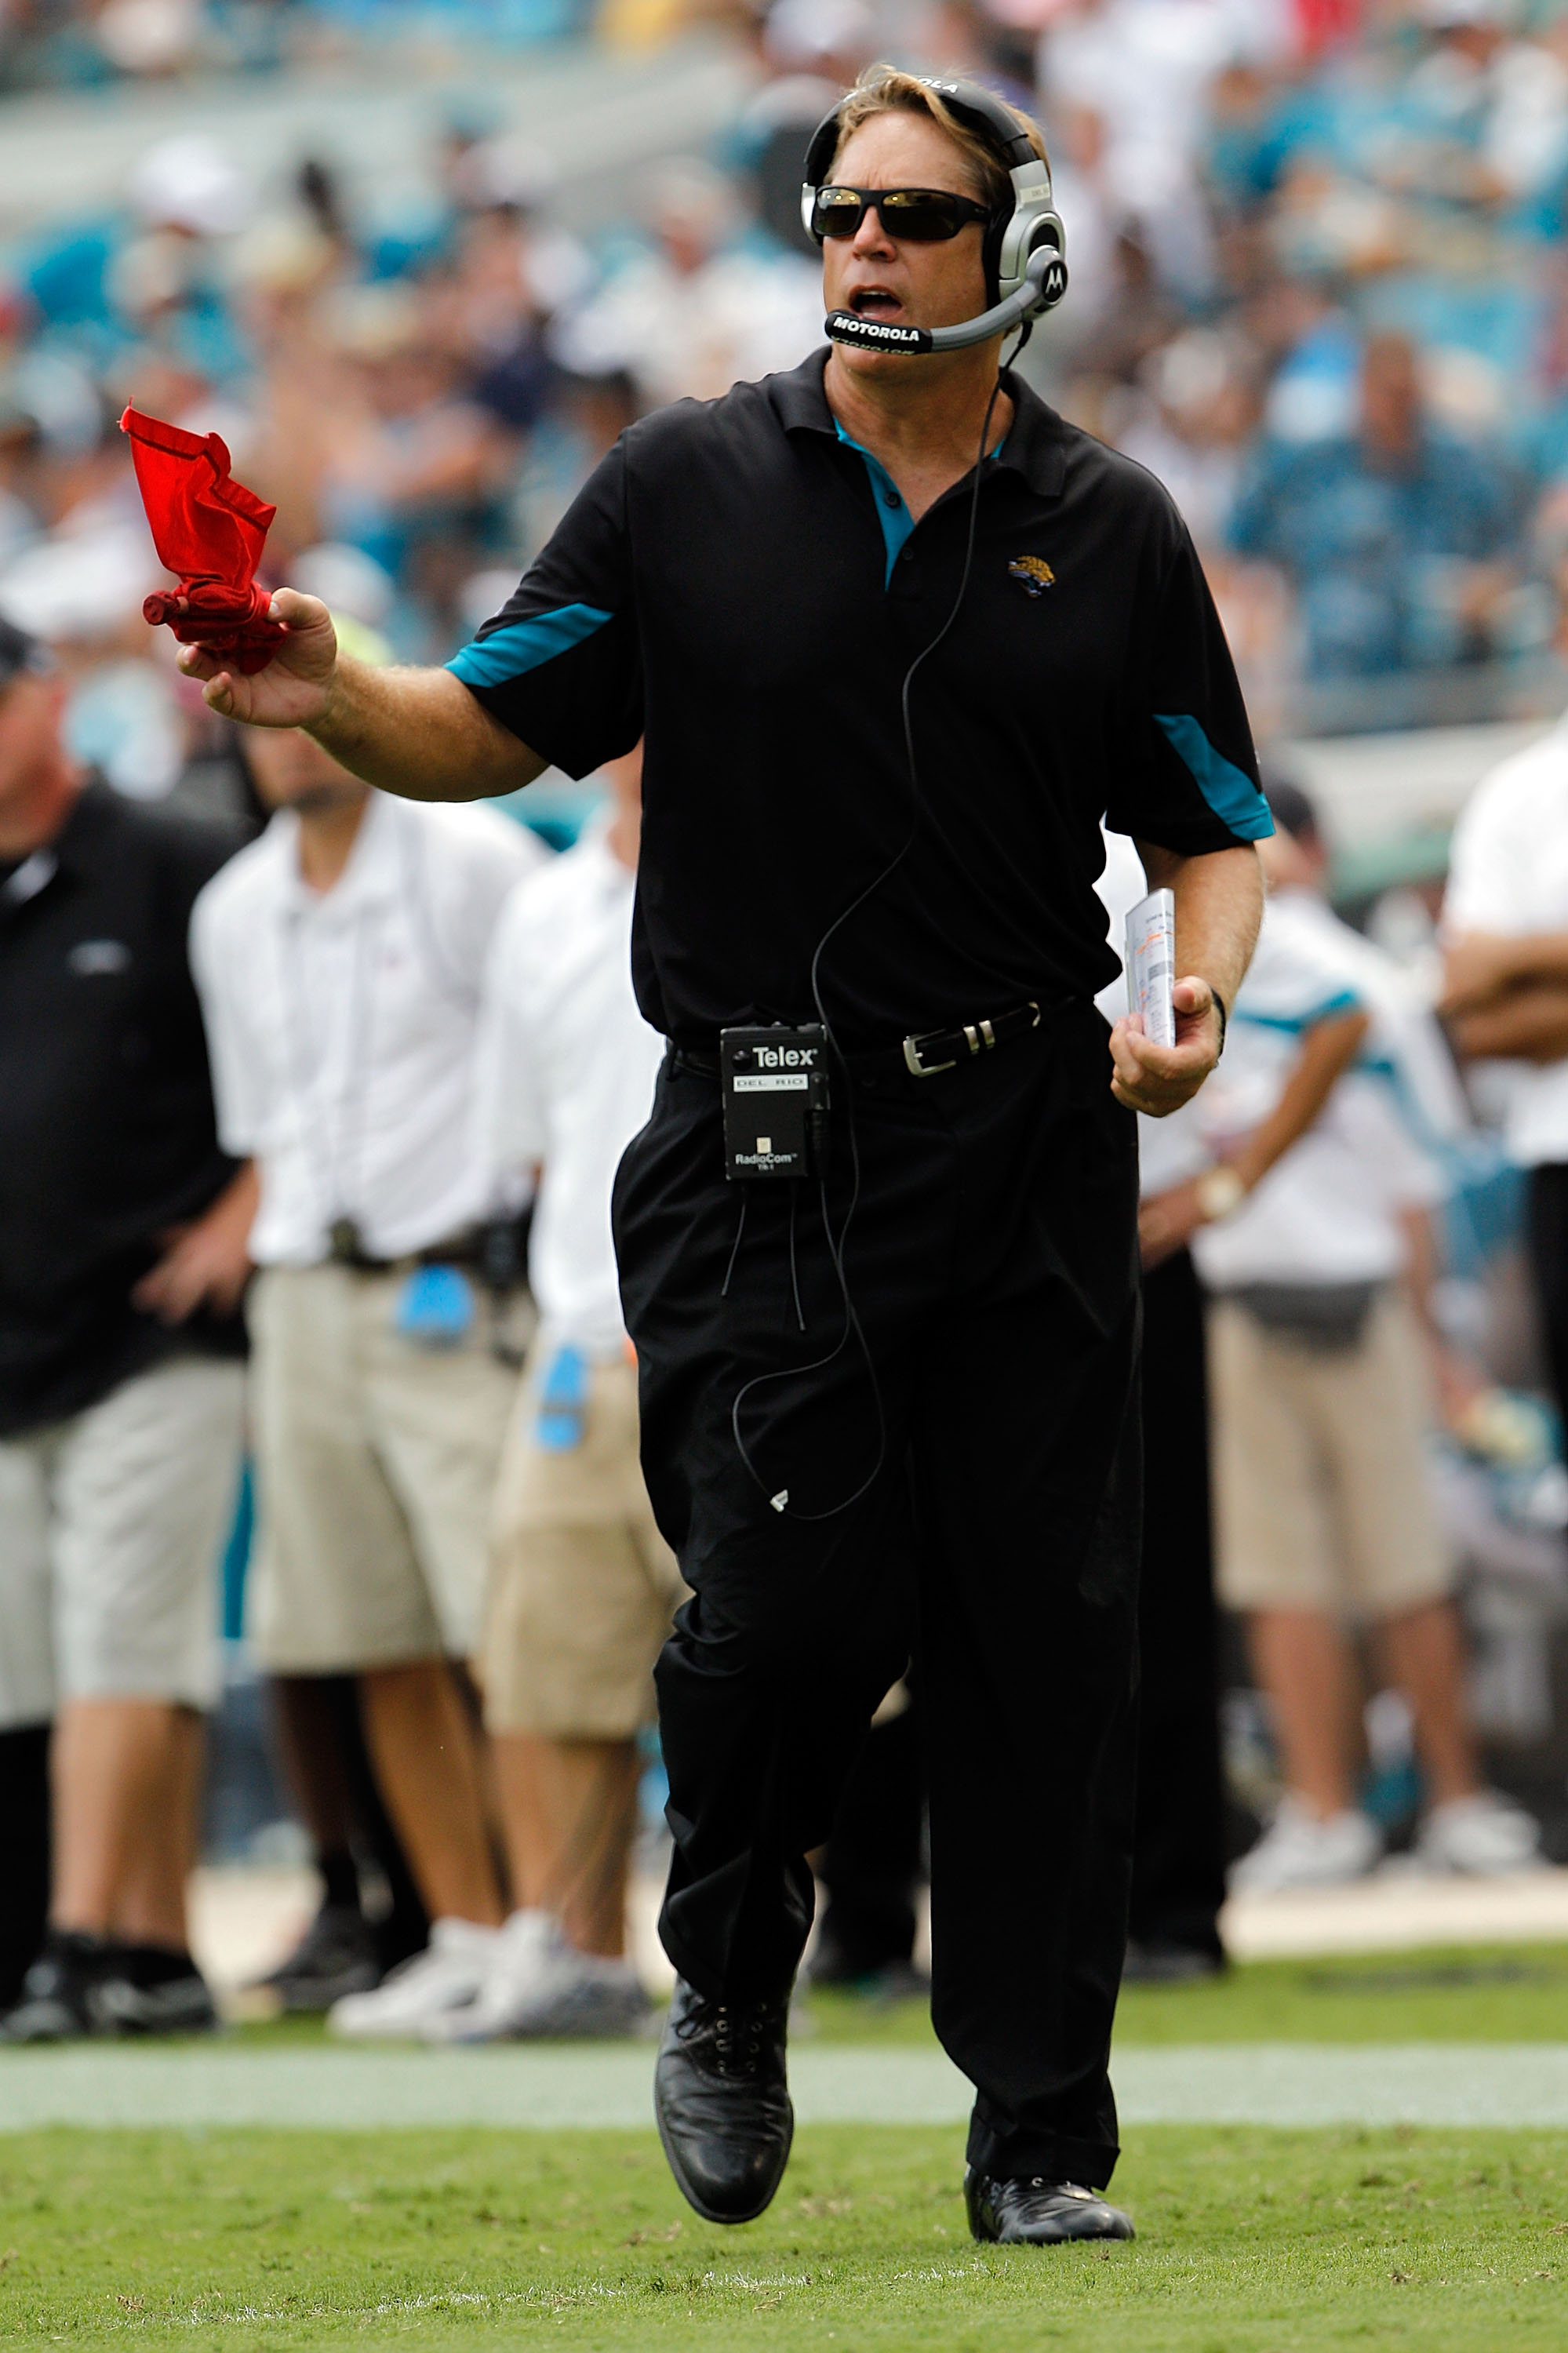 JACKSONVILLE, FL - SEPTEMBER 12:  Head coach Jack Del Rio of the Jacksonville Jaguars throws the red challenge flag during the NFL season opener game against the Denver Broncos at EverBank Field on September 12, 2010 in Jacksonville, Florida.  (Photo by S